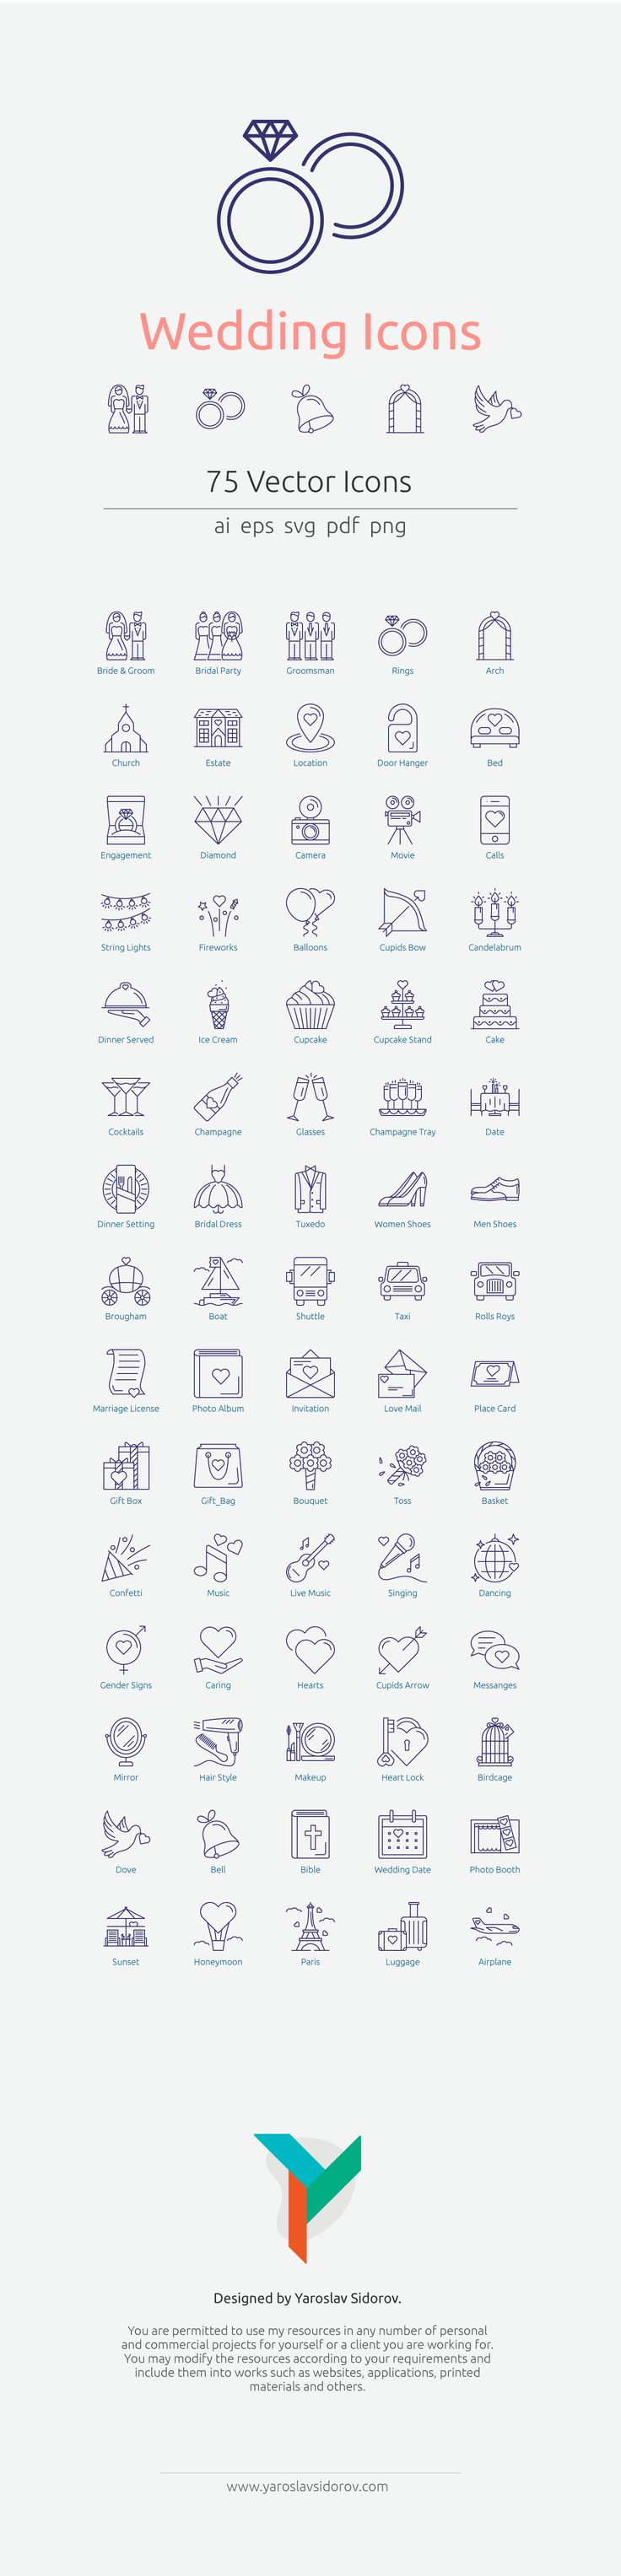 Wedding Icons in Vector and PNG